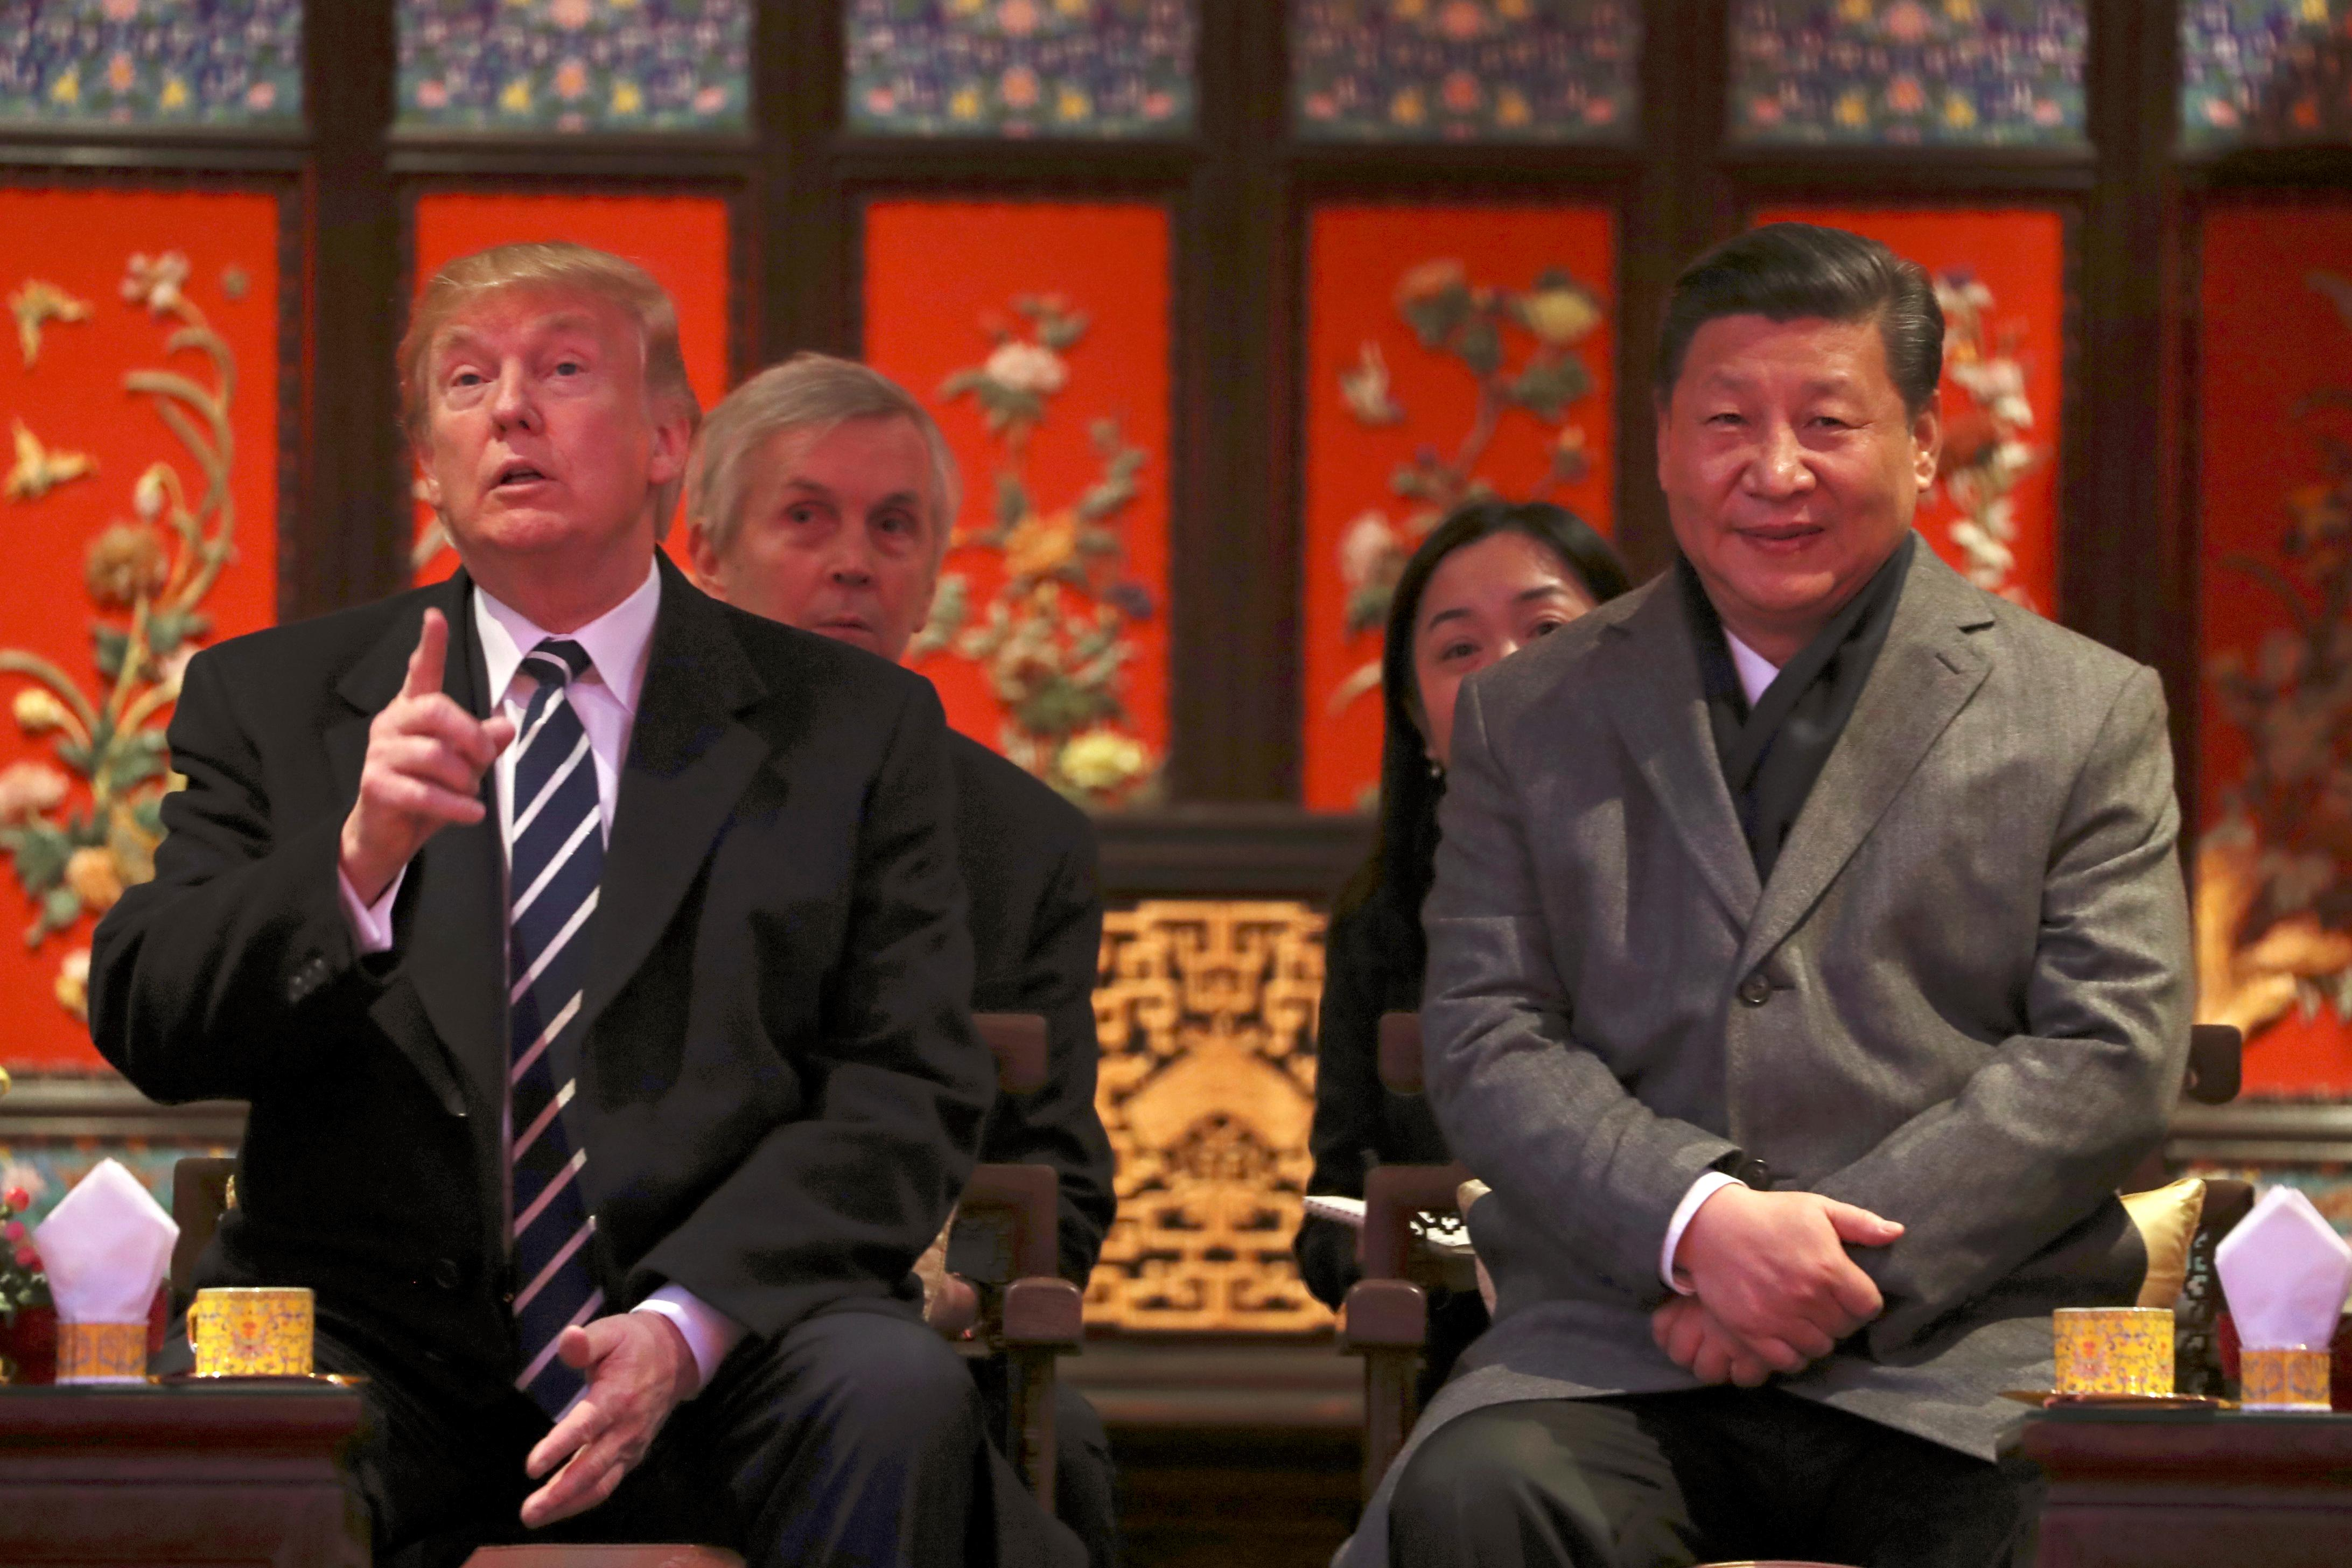 President Donald Trump, left, and Chinese President Xi Jinping, right, arrive for opera performance at the Forbidden City, Wednesday, Nov. 8, 2017, in Beijing, China. Trump is on a five country trip through Asia traveling to Japan, South Korea, China, Vietnam and the Philippines. (AP Photo/Andrew Harnik)